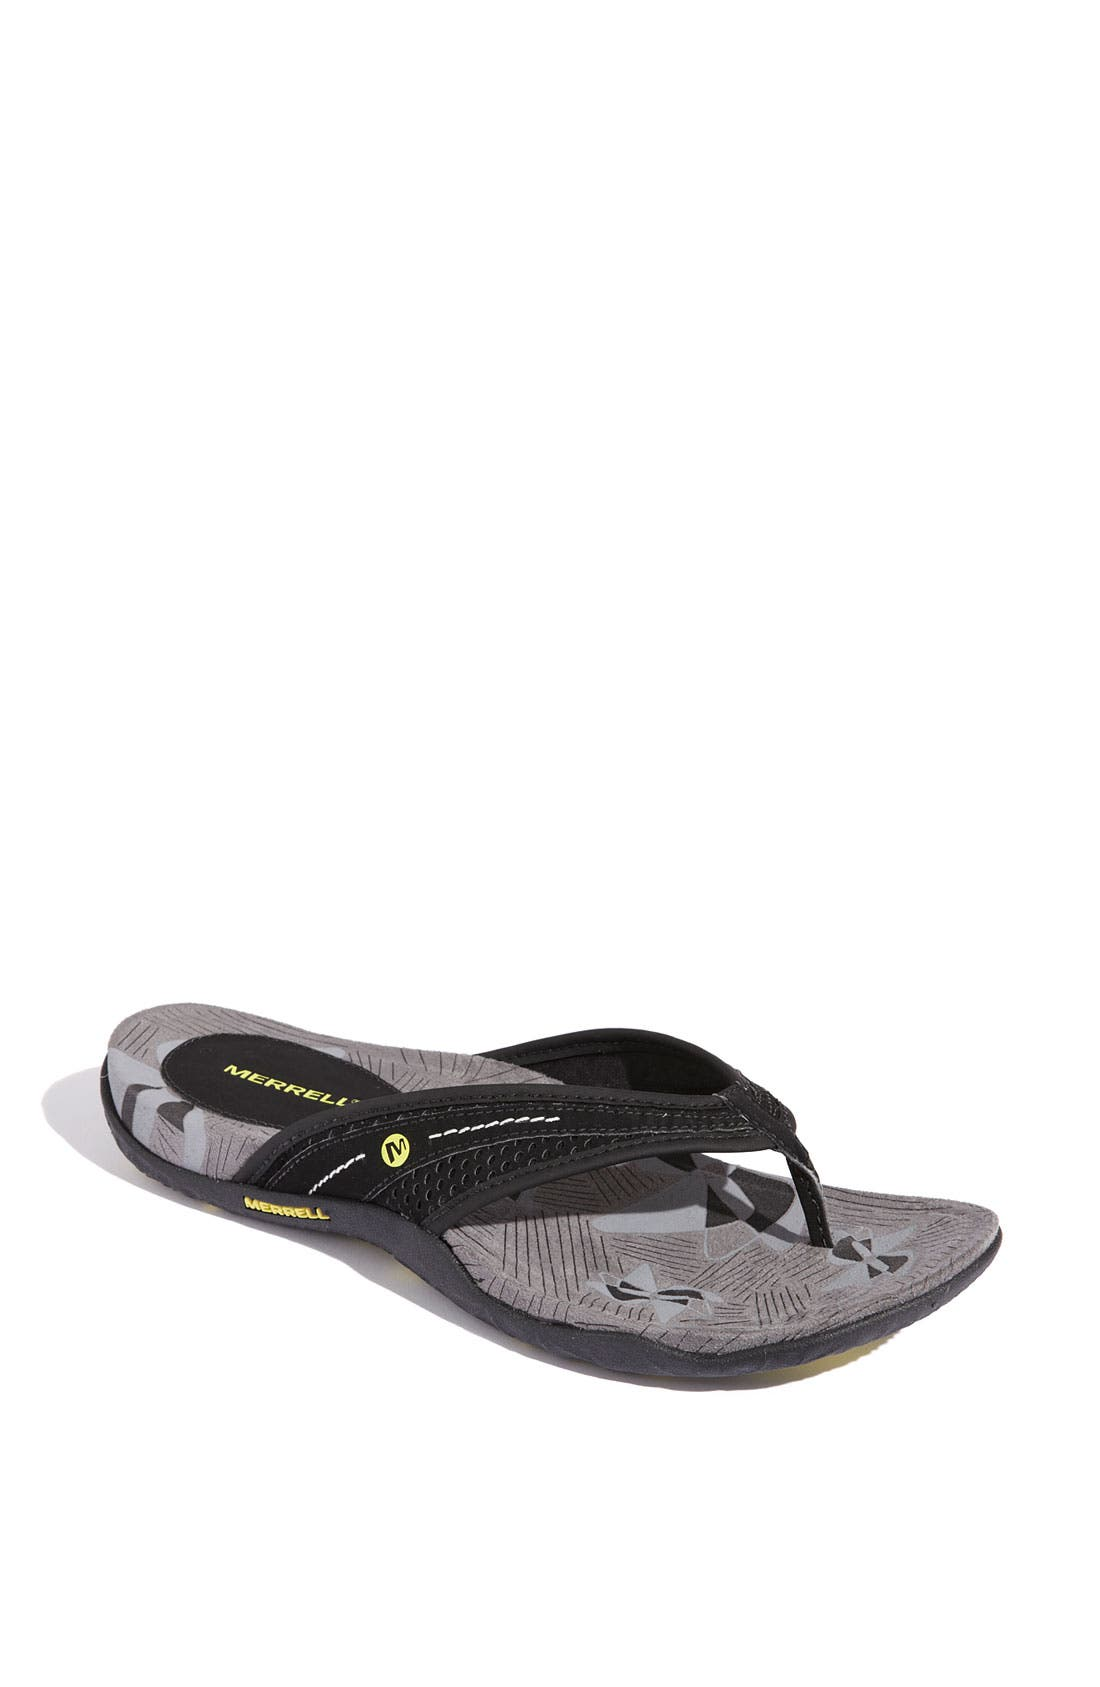 Alternate Image 1 Selected - Merrell 'Lorelei' Sandal